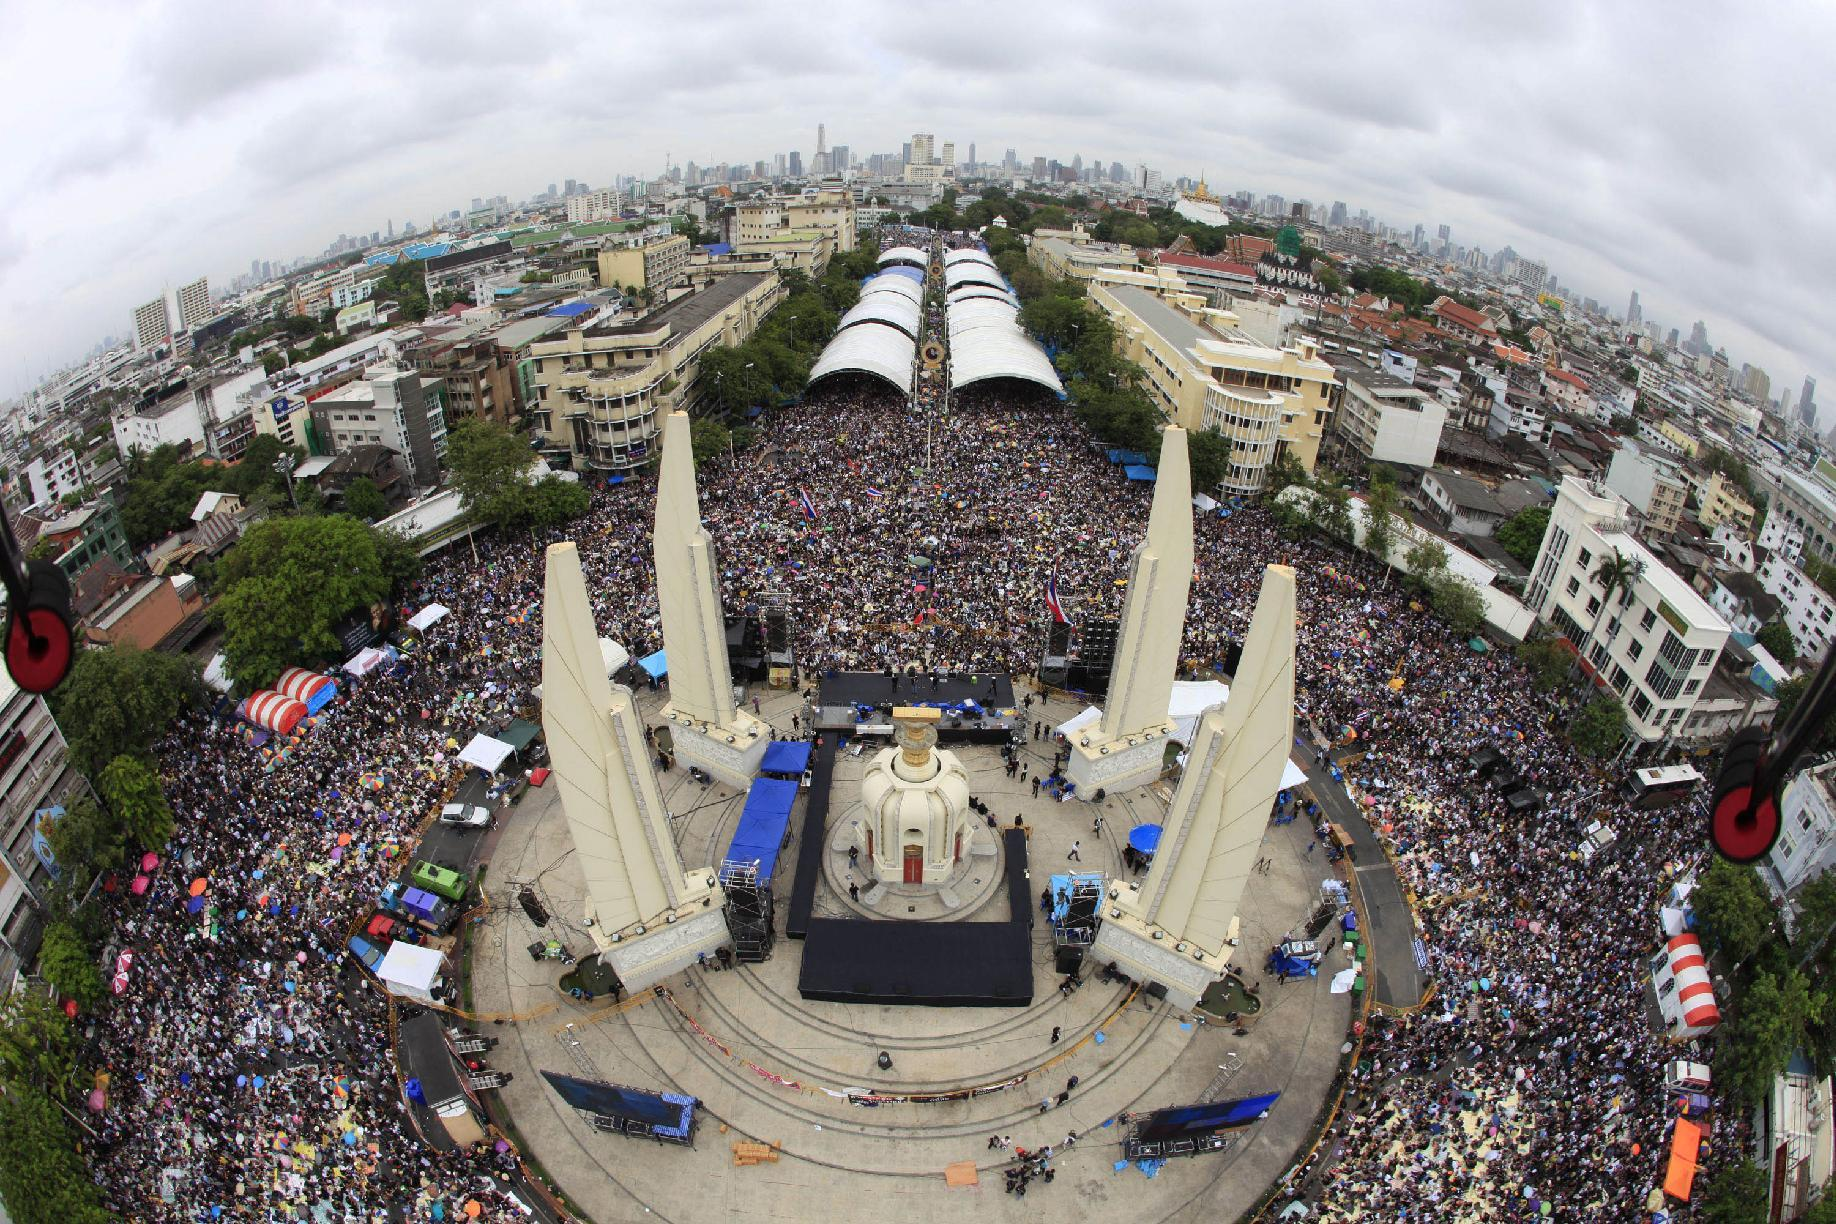 In this photo released by Siam 360 and taken from a drone, anti-government protesters stage a rally, calling for Thai Prime Minister Yingluck Shinawatra to step down, at Democracy Monument in Bangkok, Thailand, Sunday, Nov. 24, 2013. In the United States, the Federal Aviation Administration is developing new rules as the technology makes drones far more versatile, but for now operators can run afoul of regulations by using them for commercial purposes, including journalism. (AP Photo/Siam 360)